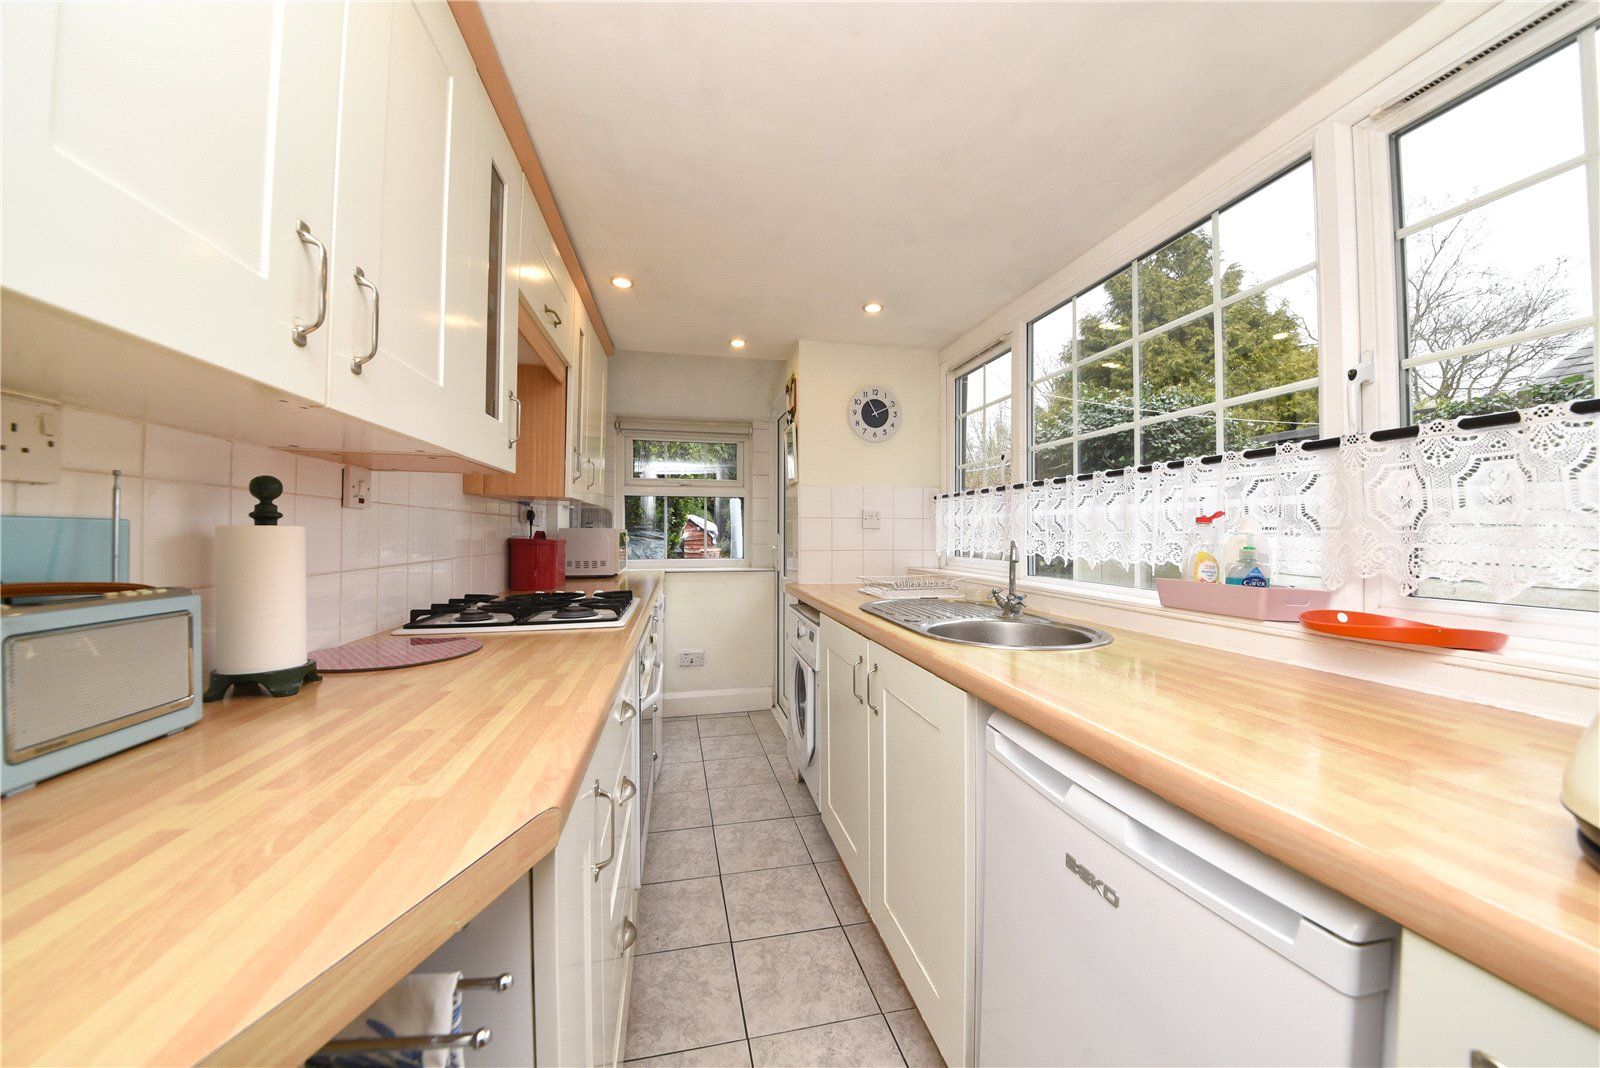 2 bed house for sale in London, N12 9JN  - Property Image 4